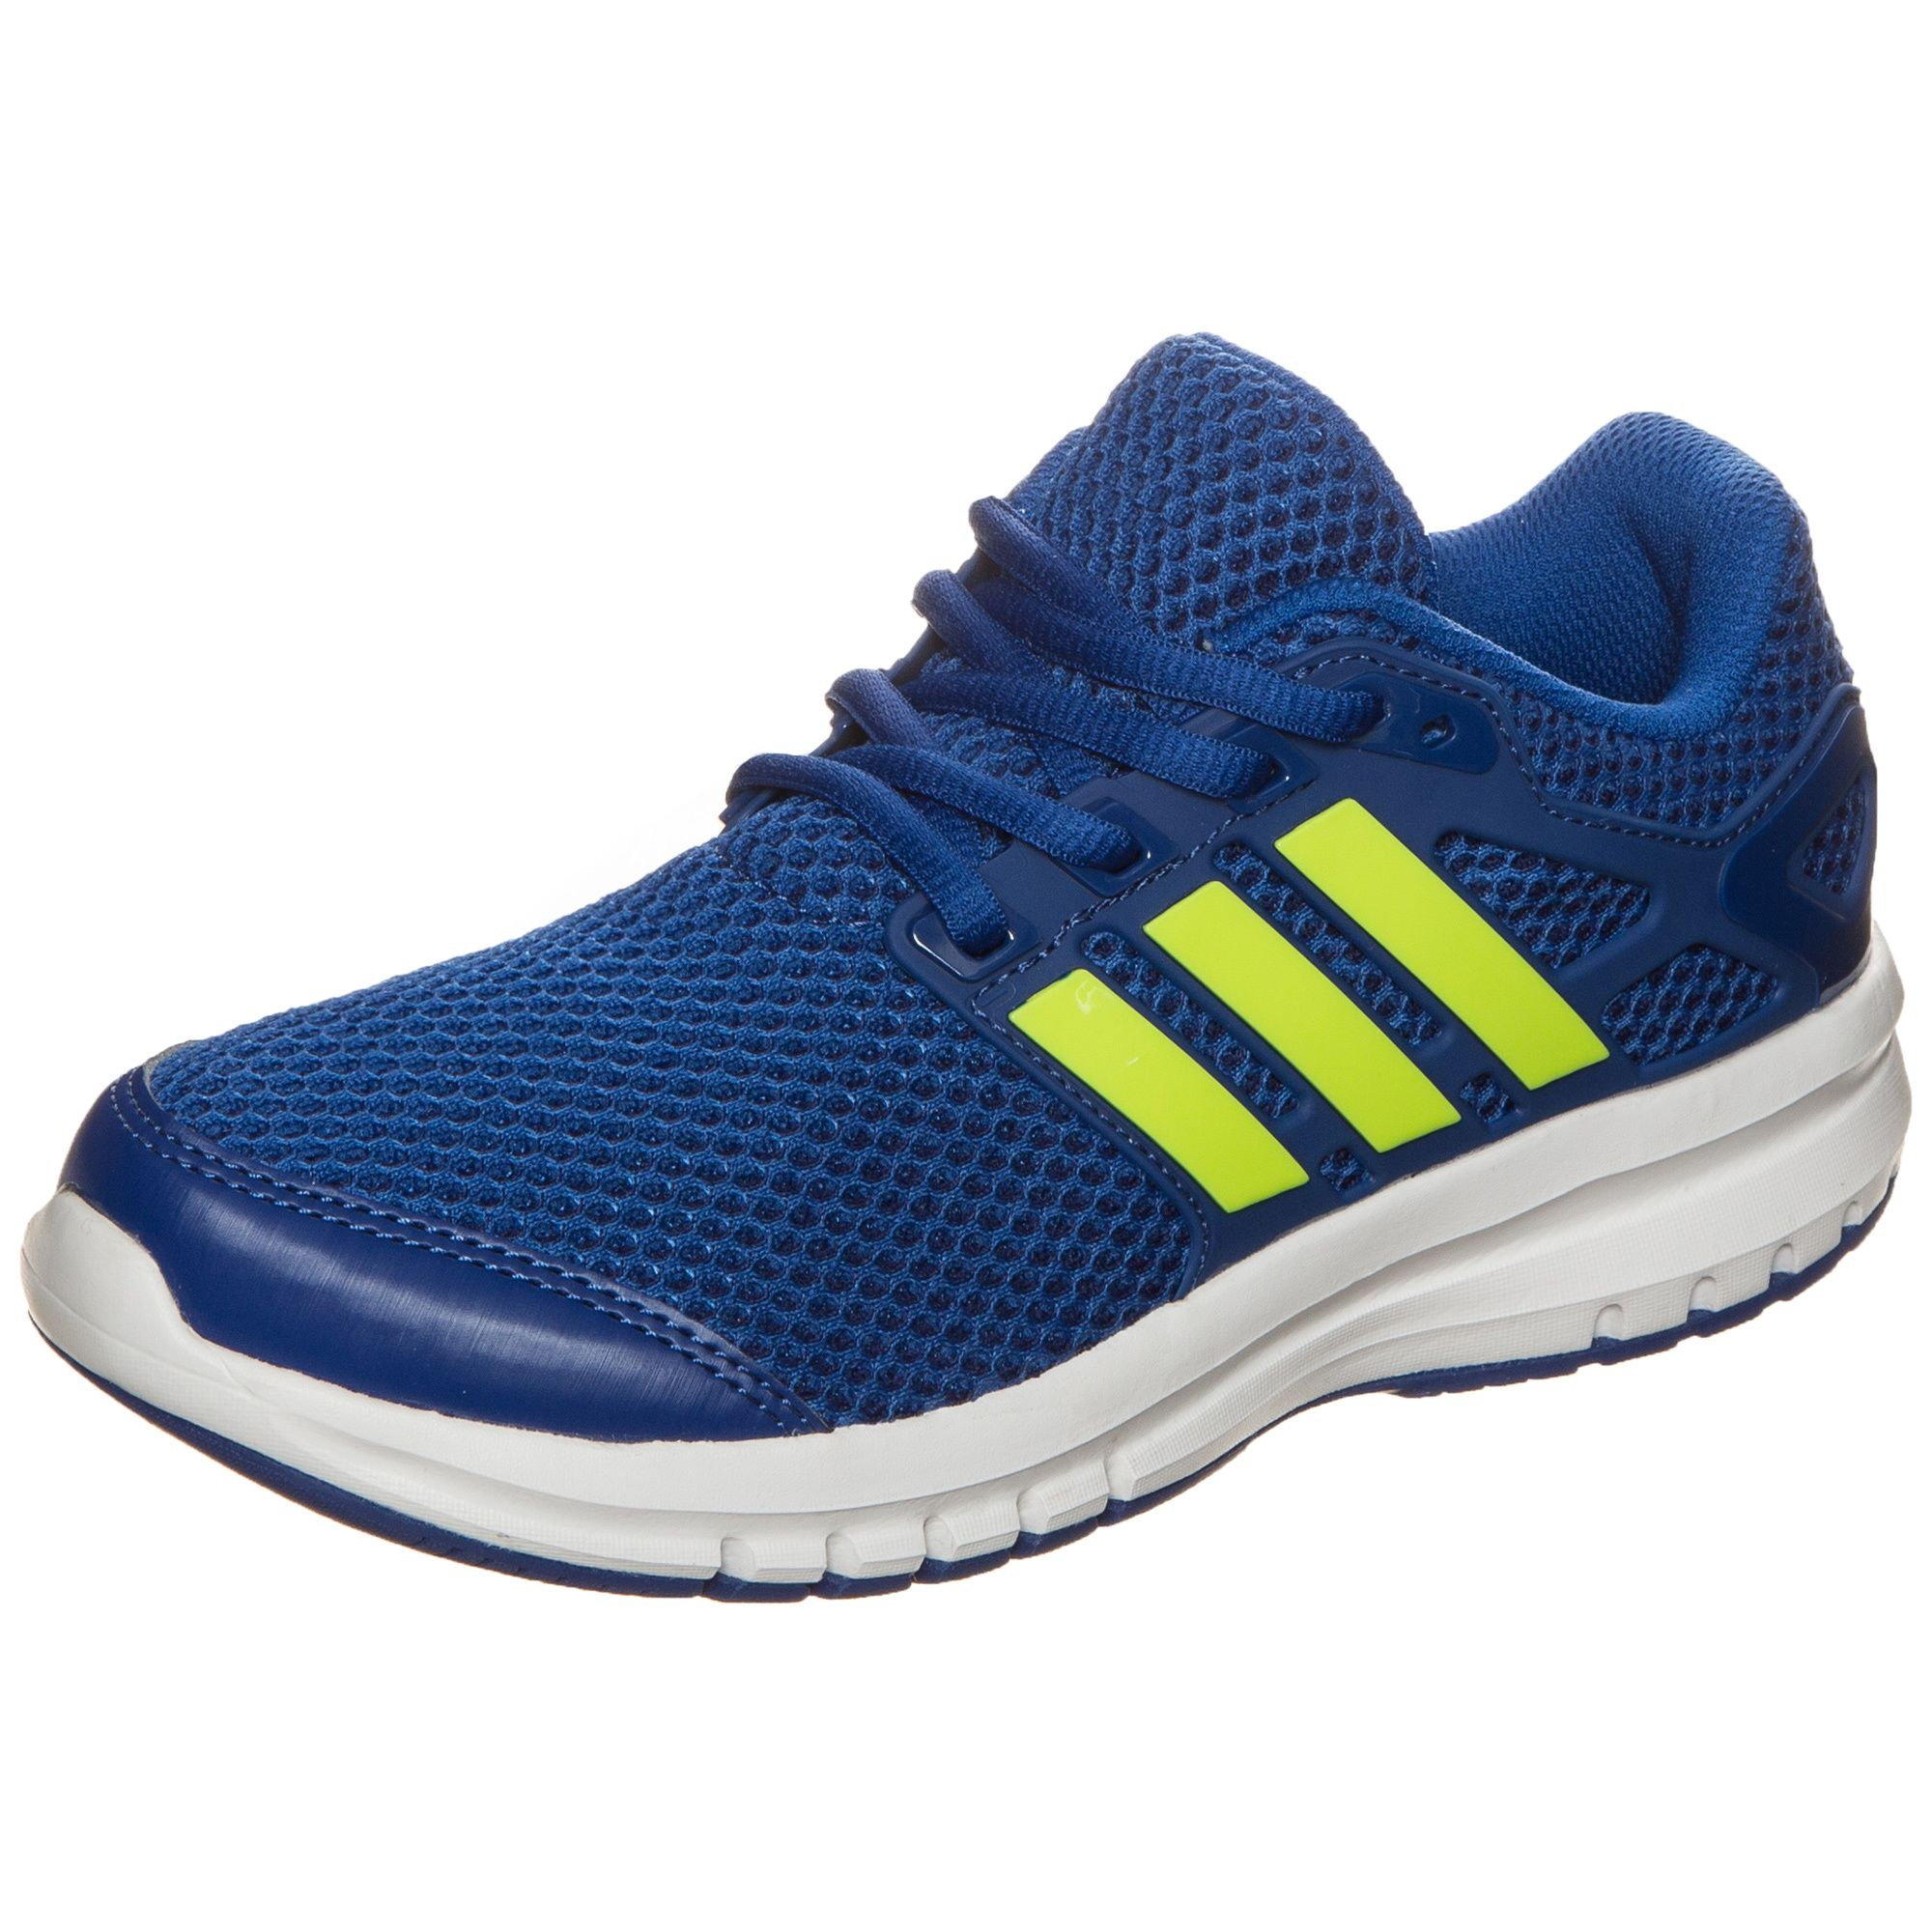 ADIDAS PERFORMANCE adidas Performance Laufschuh »Energy Cloud«